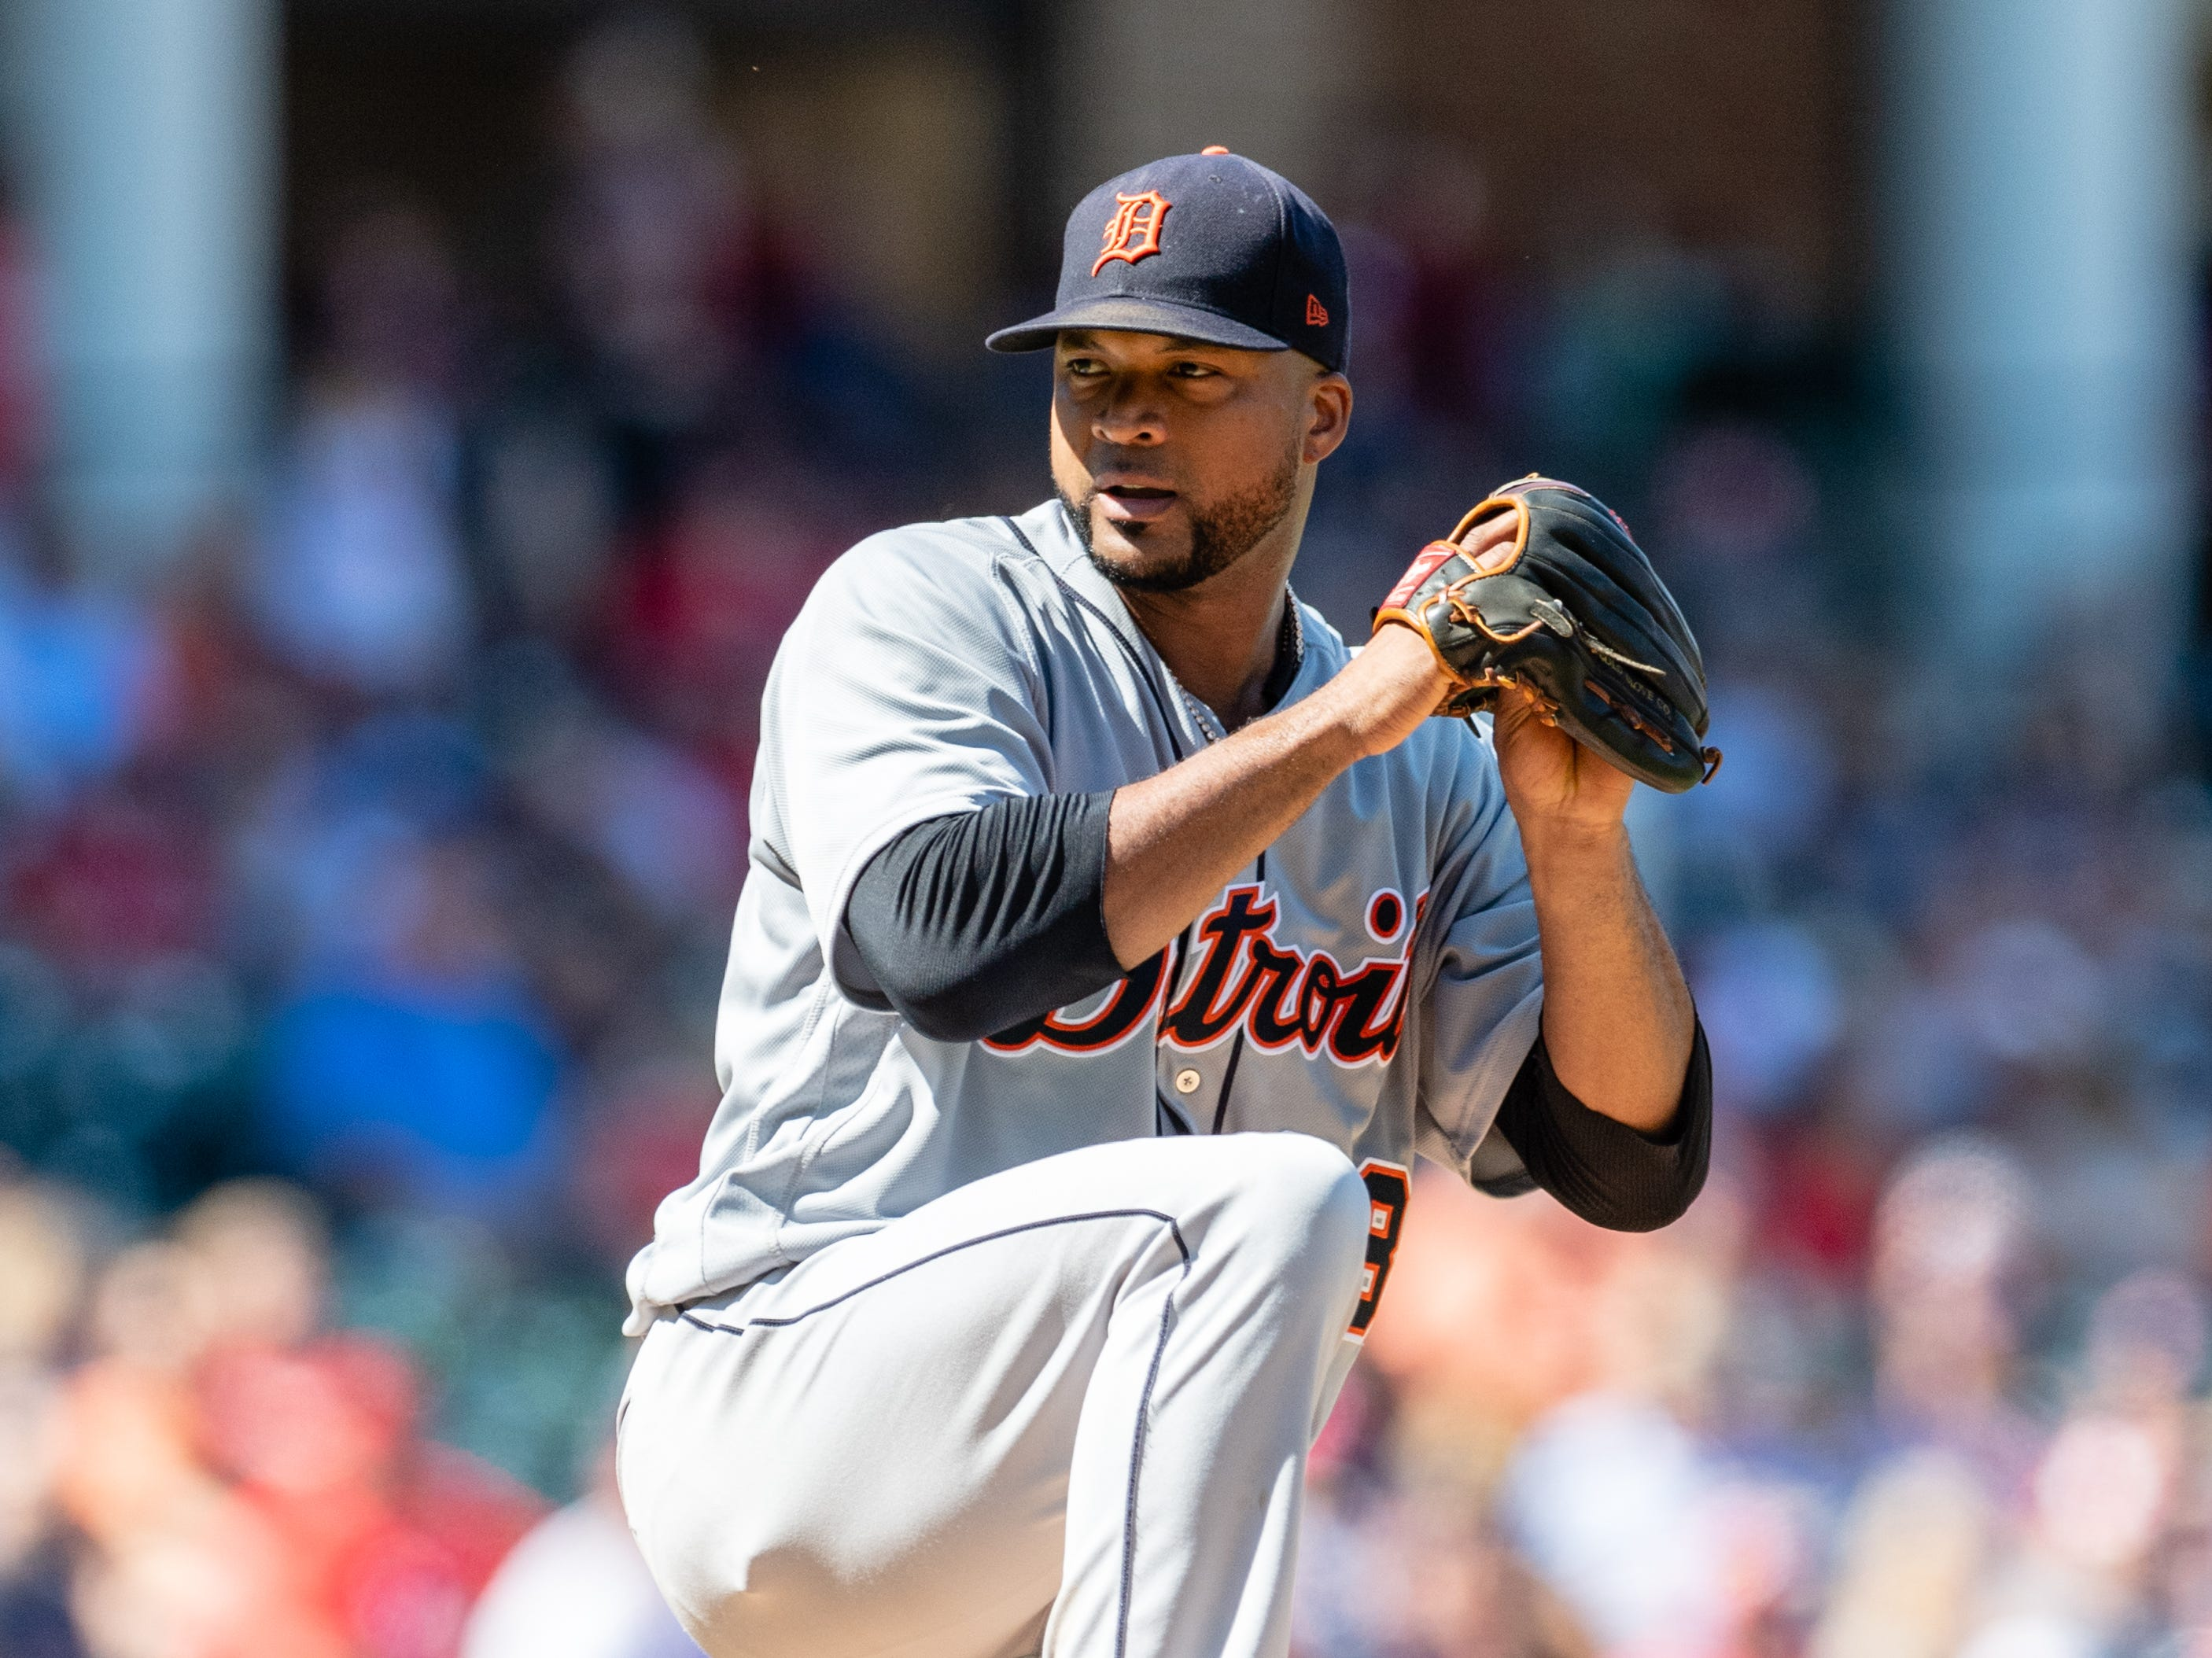 Tigers pitcher Francisco Liriano pitches during the first inning on Sunday, Sept. 16, 2018, in Cleveland.